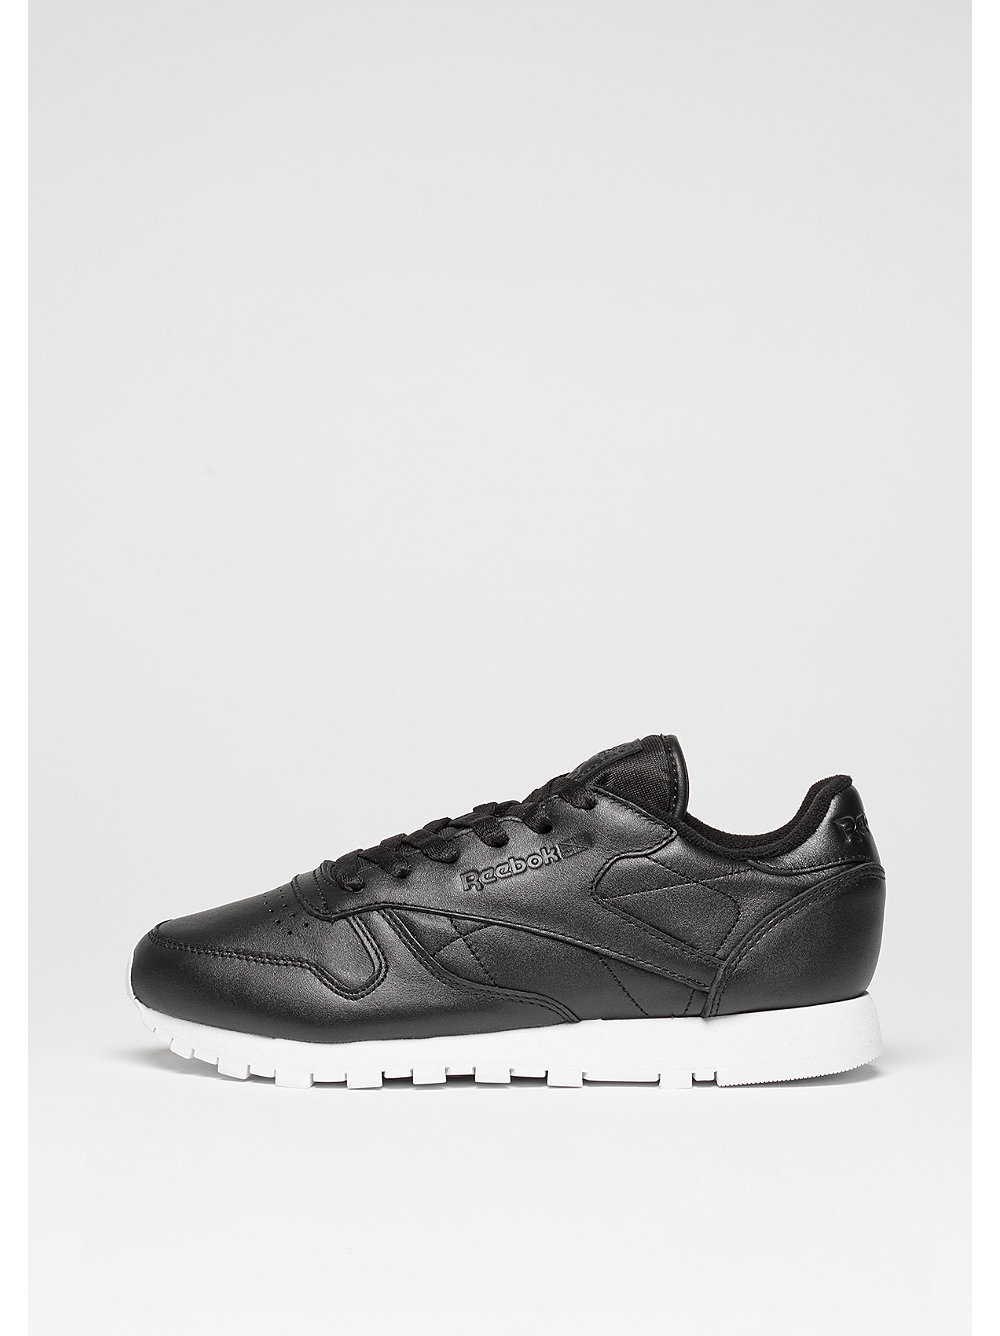 Schuh Classic Leather Pearlized black/white